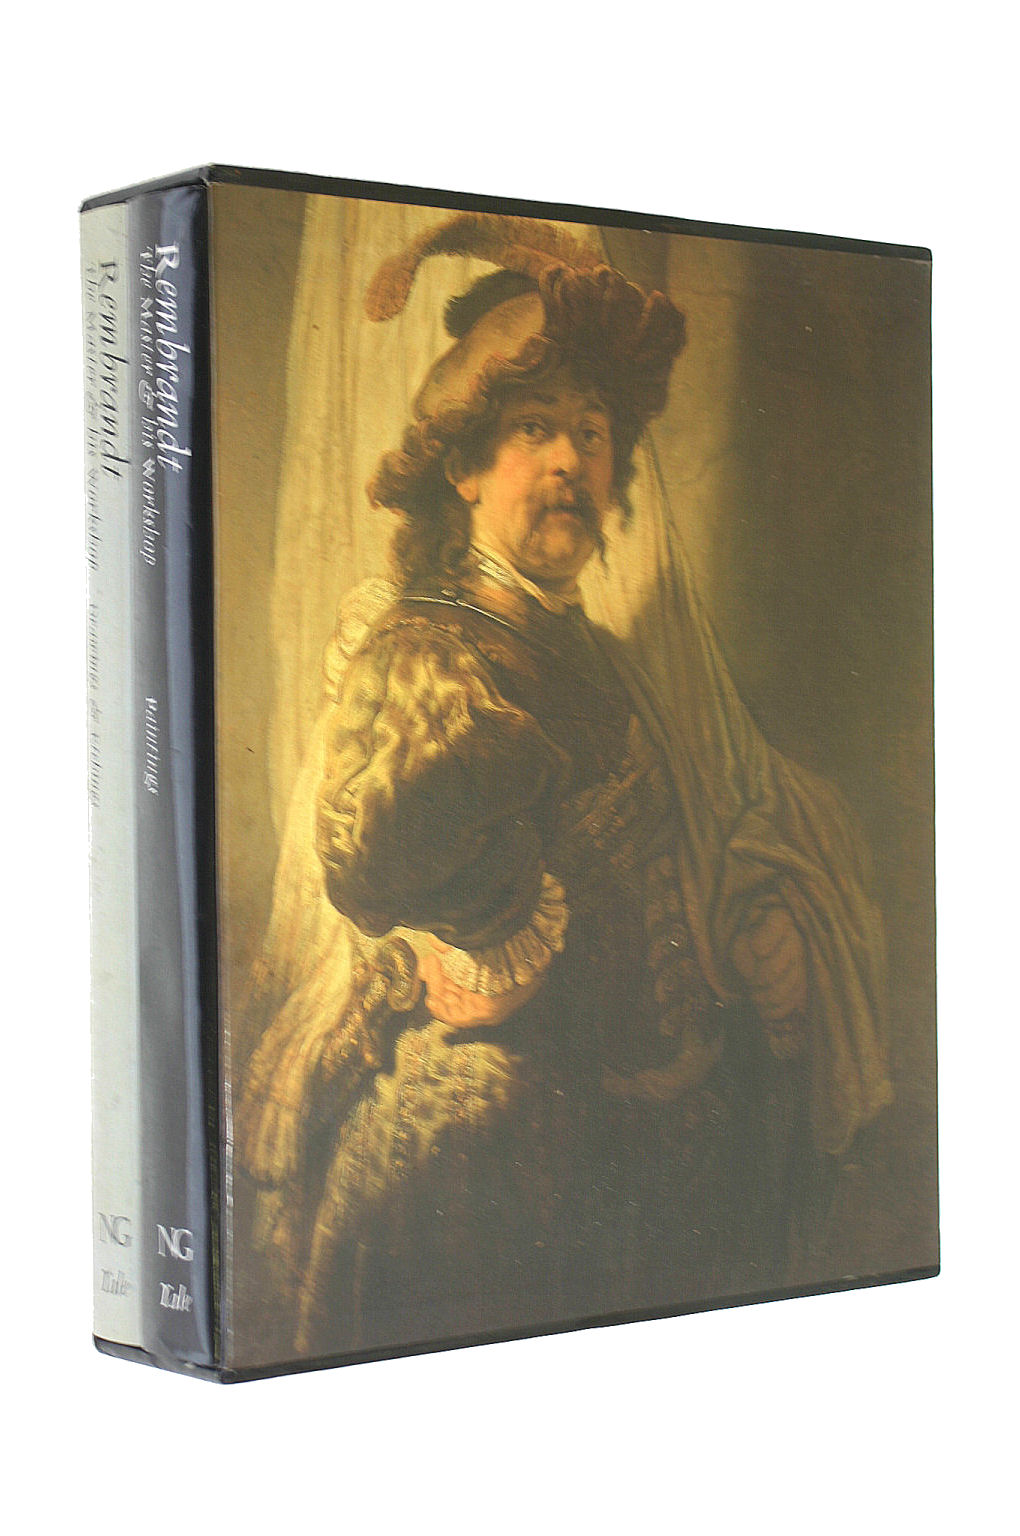 Image for Rembrandt The Master and His Workshop: Volume 1: Paintings, Volume 2: Drawings and Etchings